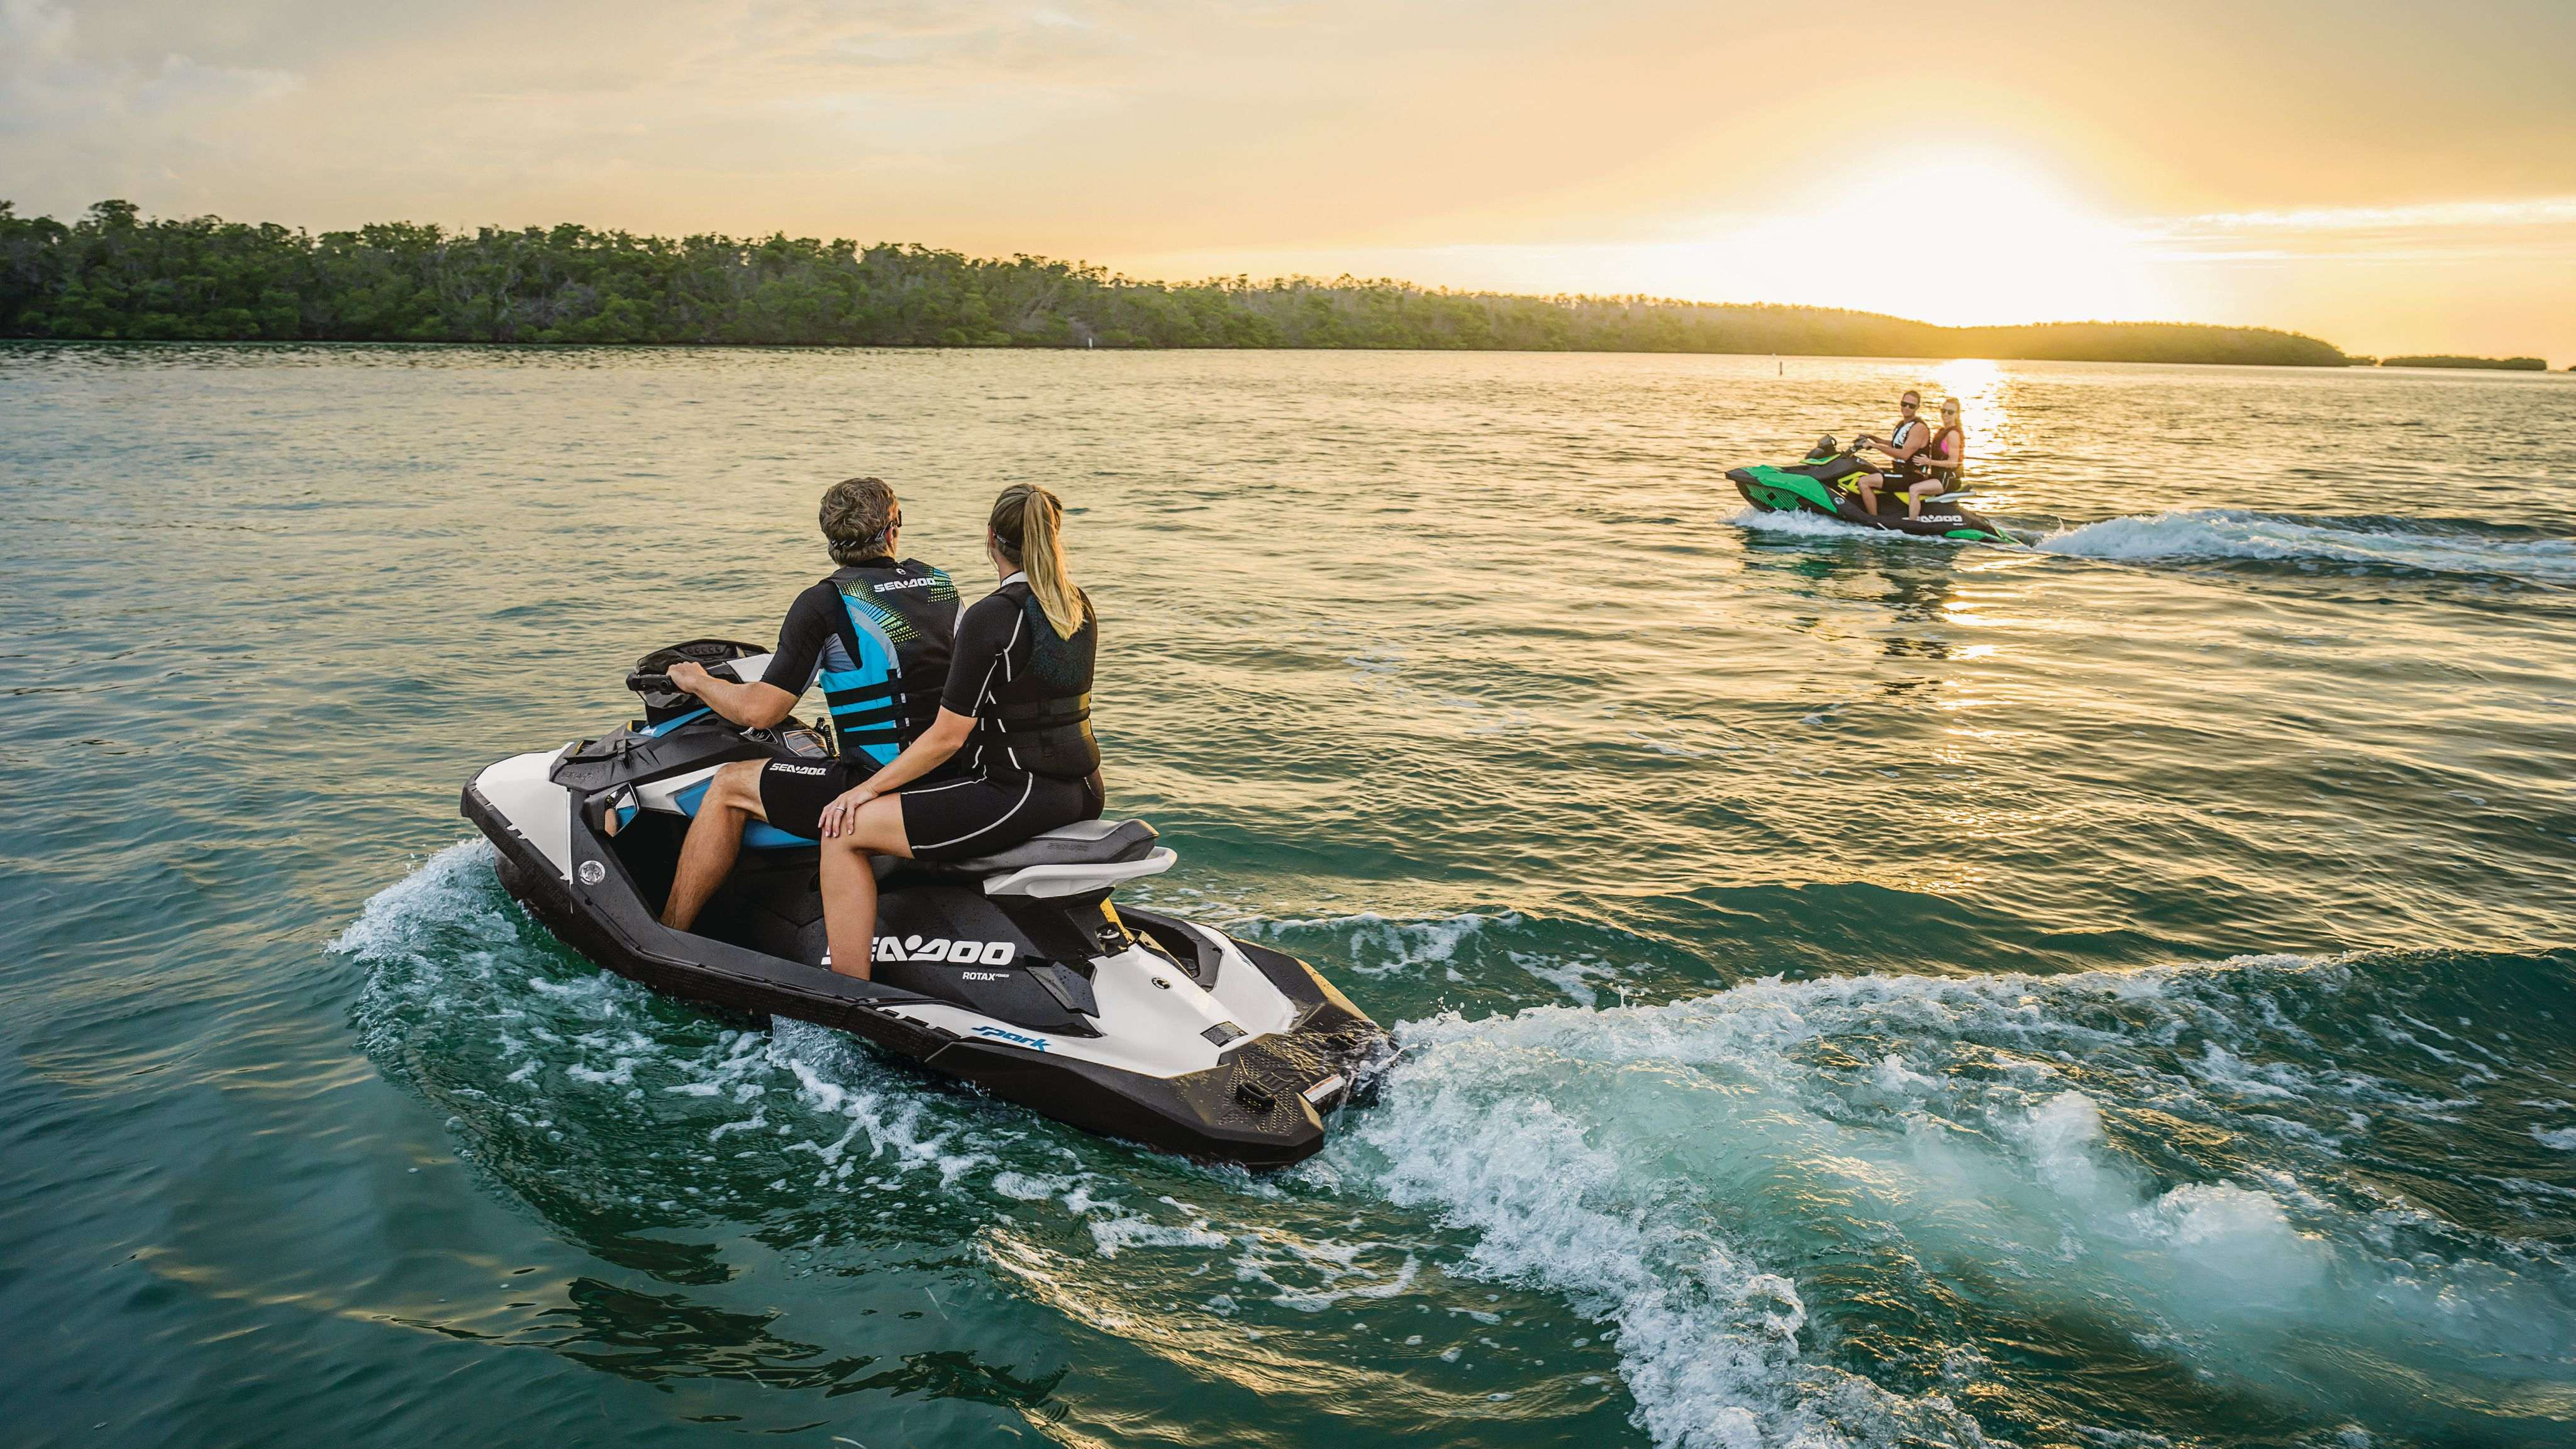 Family riding on a Sea-Doo